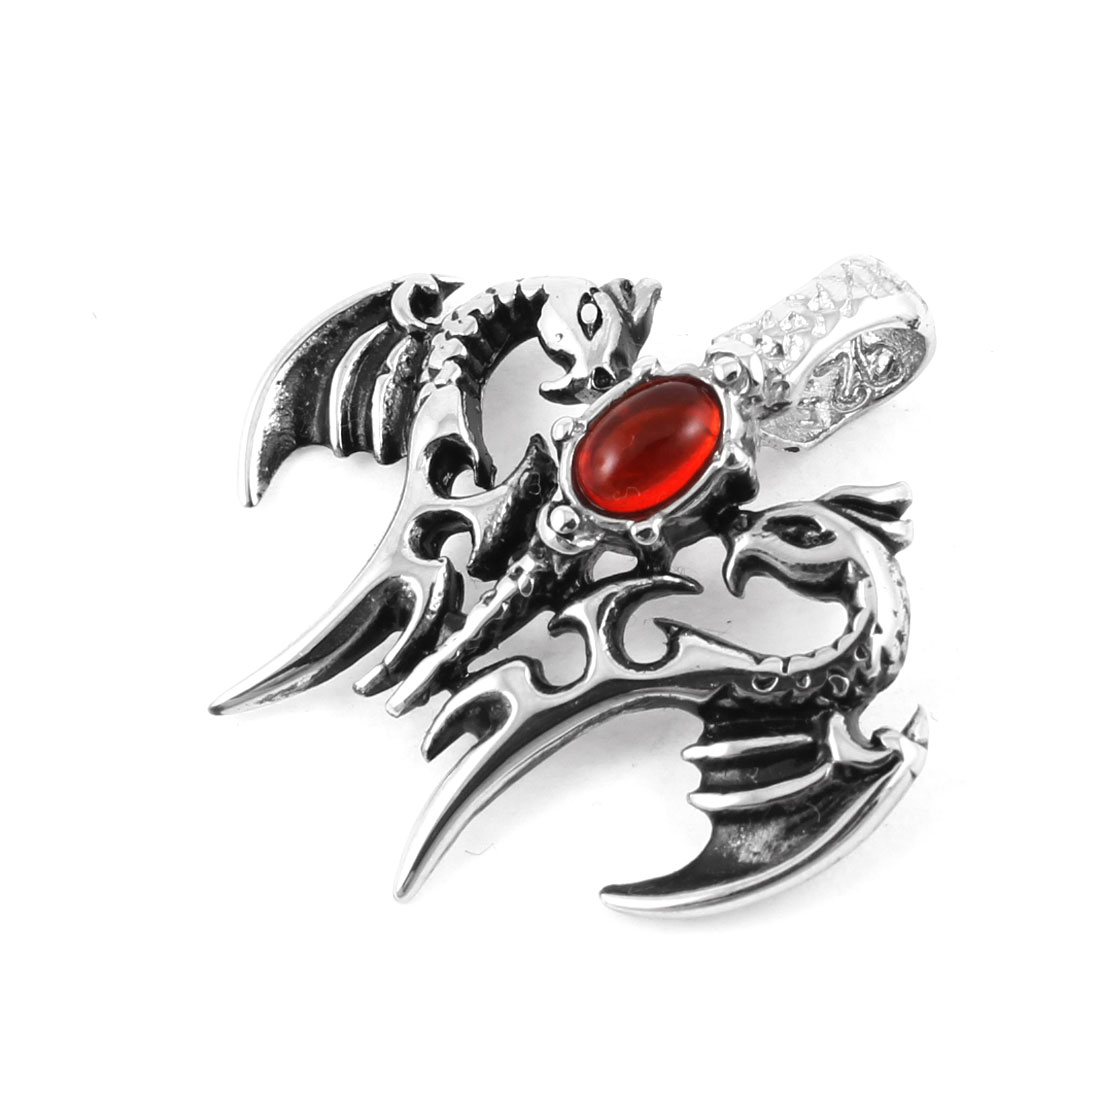 Stainless Steel Dragon Style Red Faux Crystal Ornament Necklace Pendant